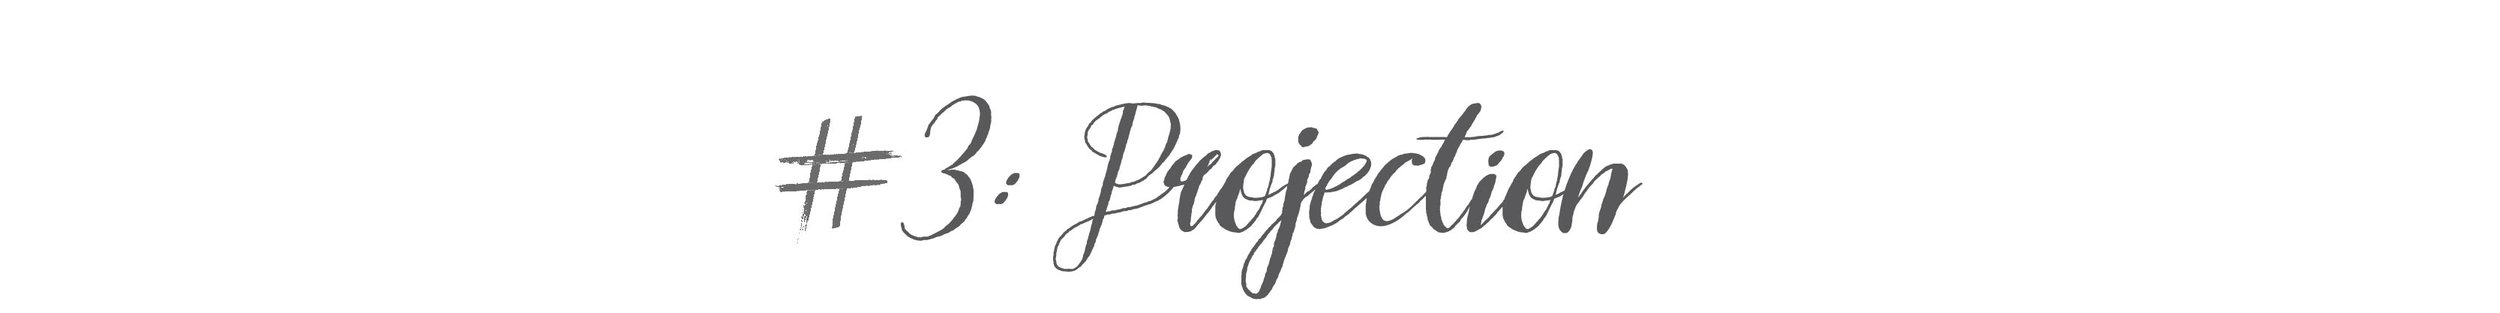 #3: Projection